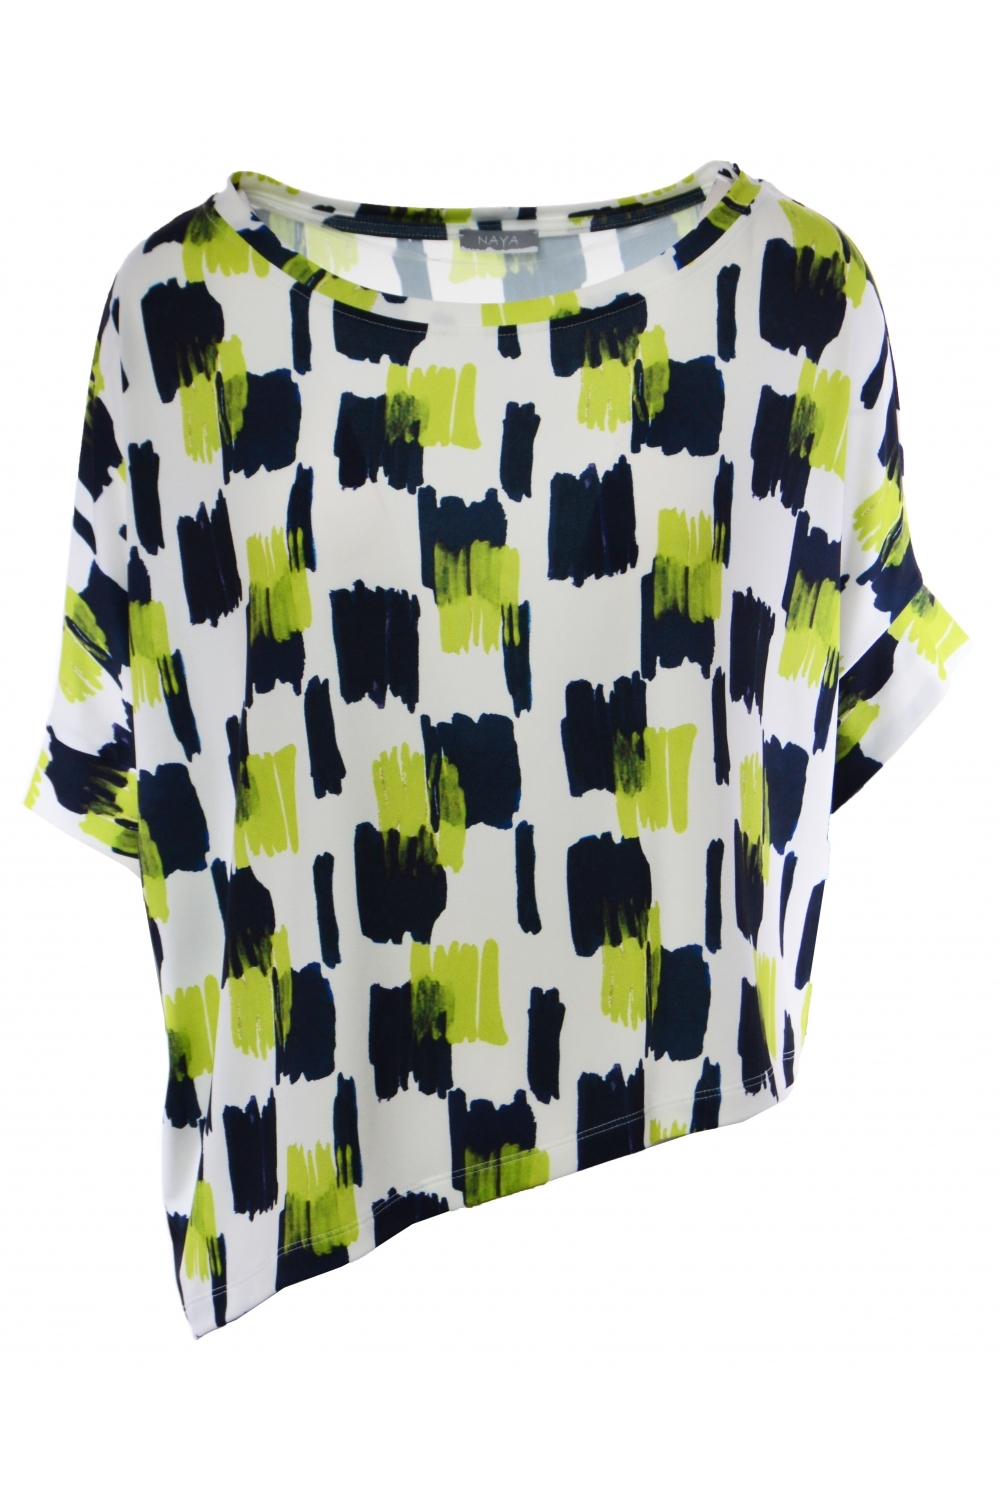 naya-abstract-print-boxy-top-navy-lime-naw19-264-p3418-71807_zoom.jpg